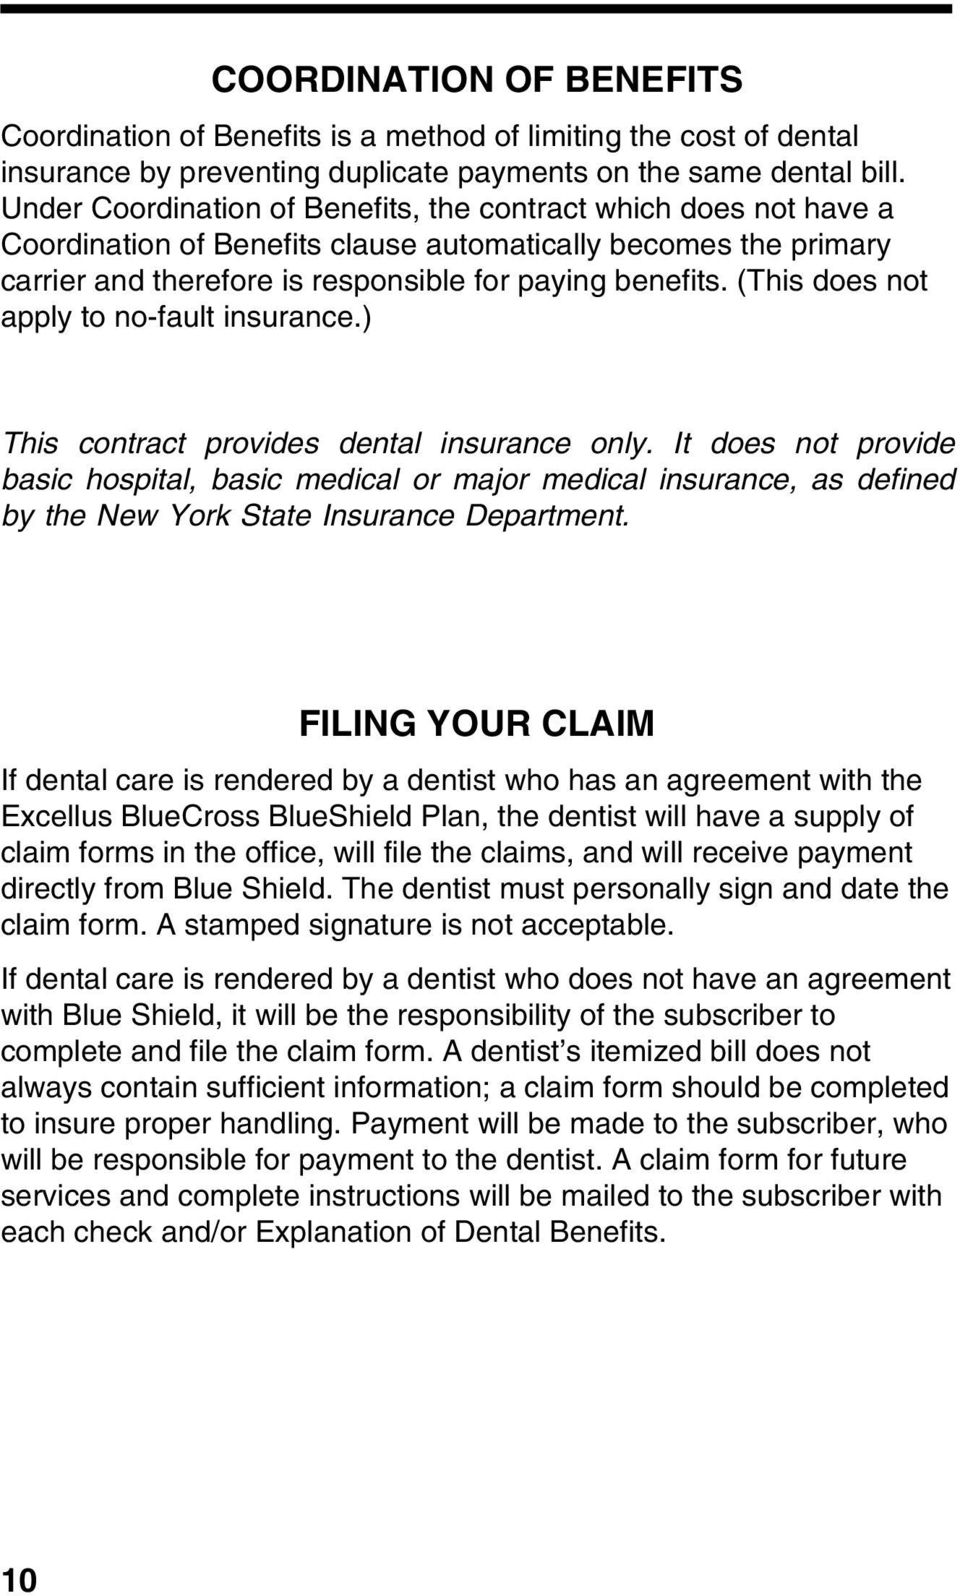 (This does not apply to no-fault insurance.) This contract provides dental insurance only.